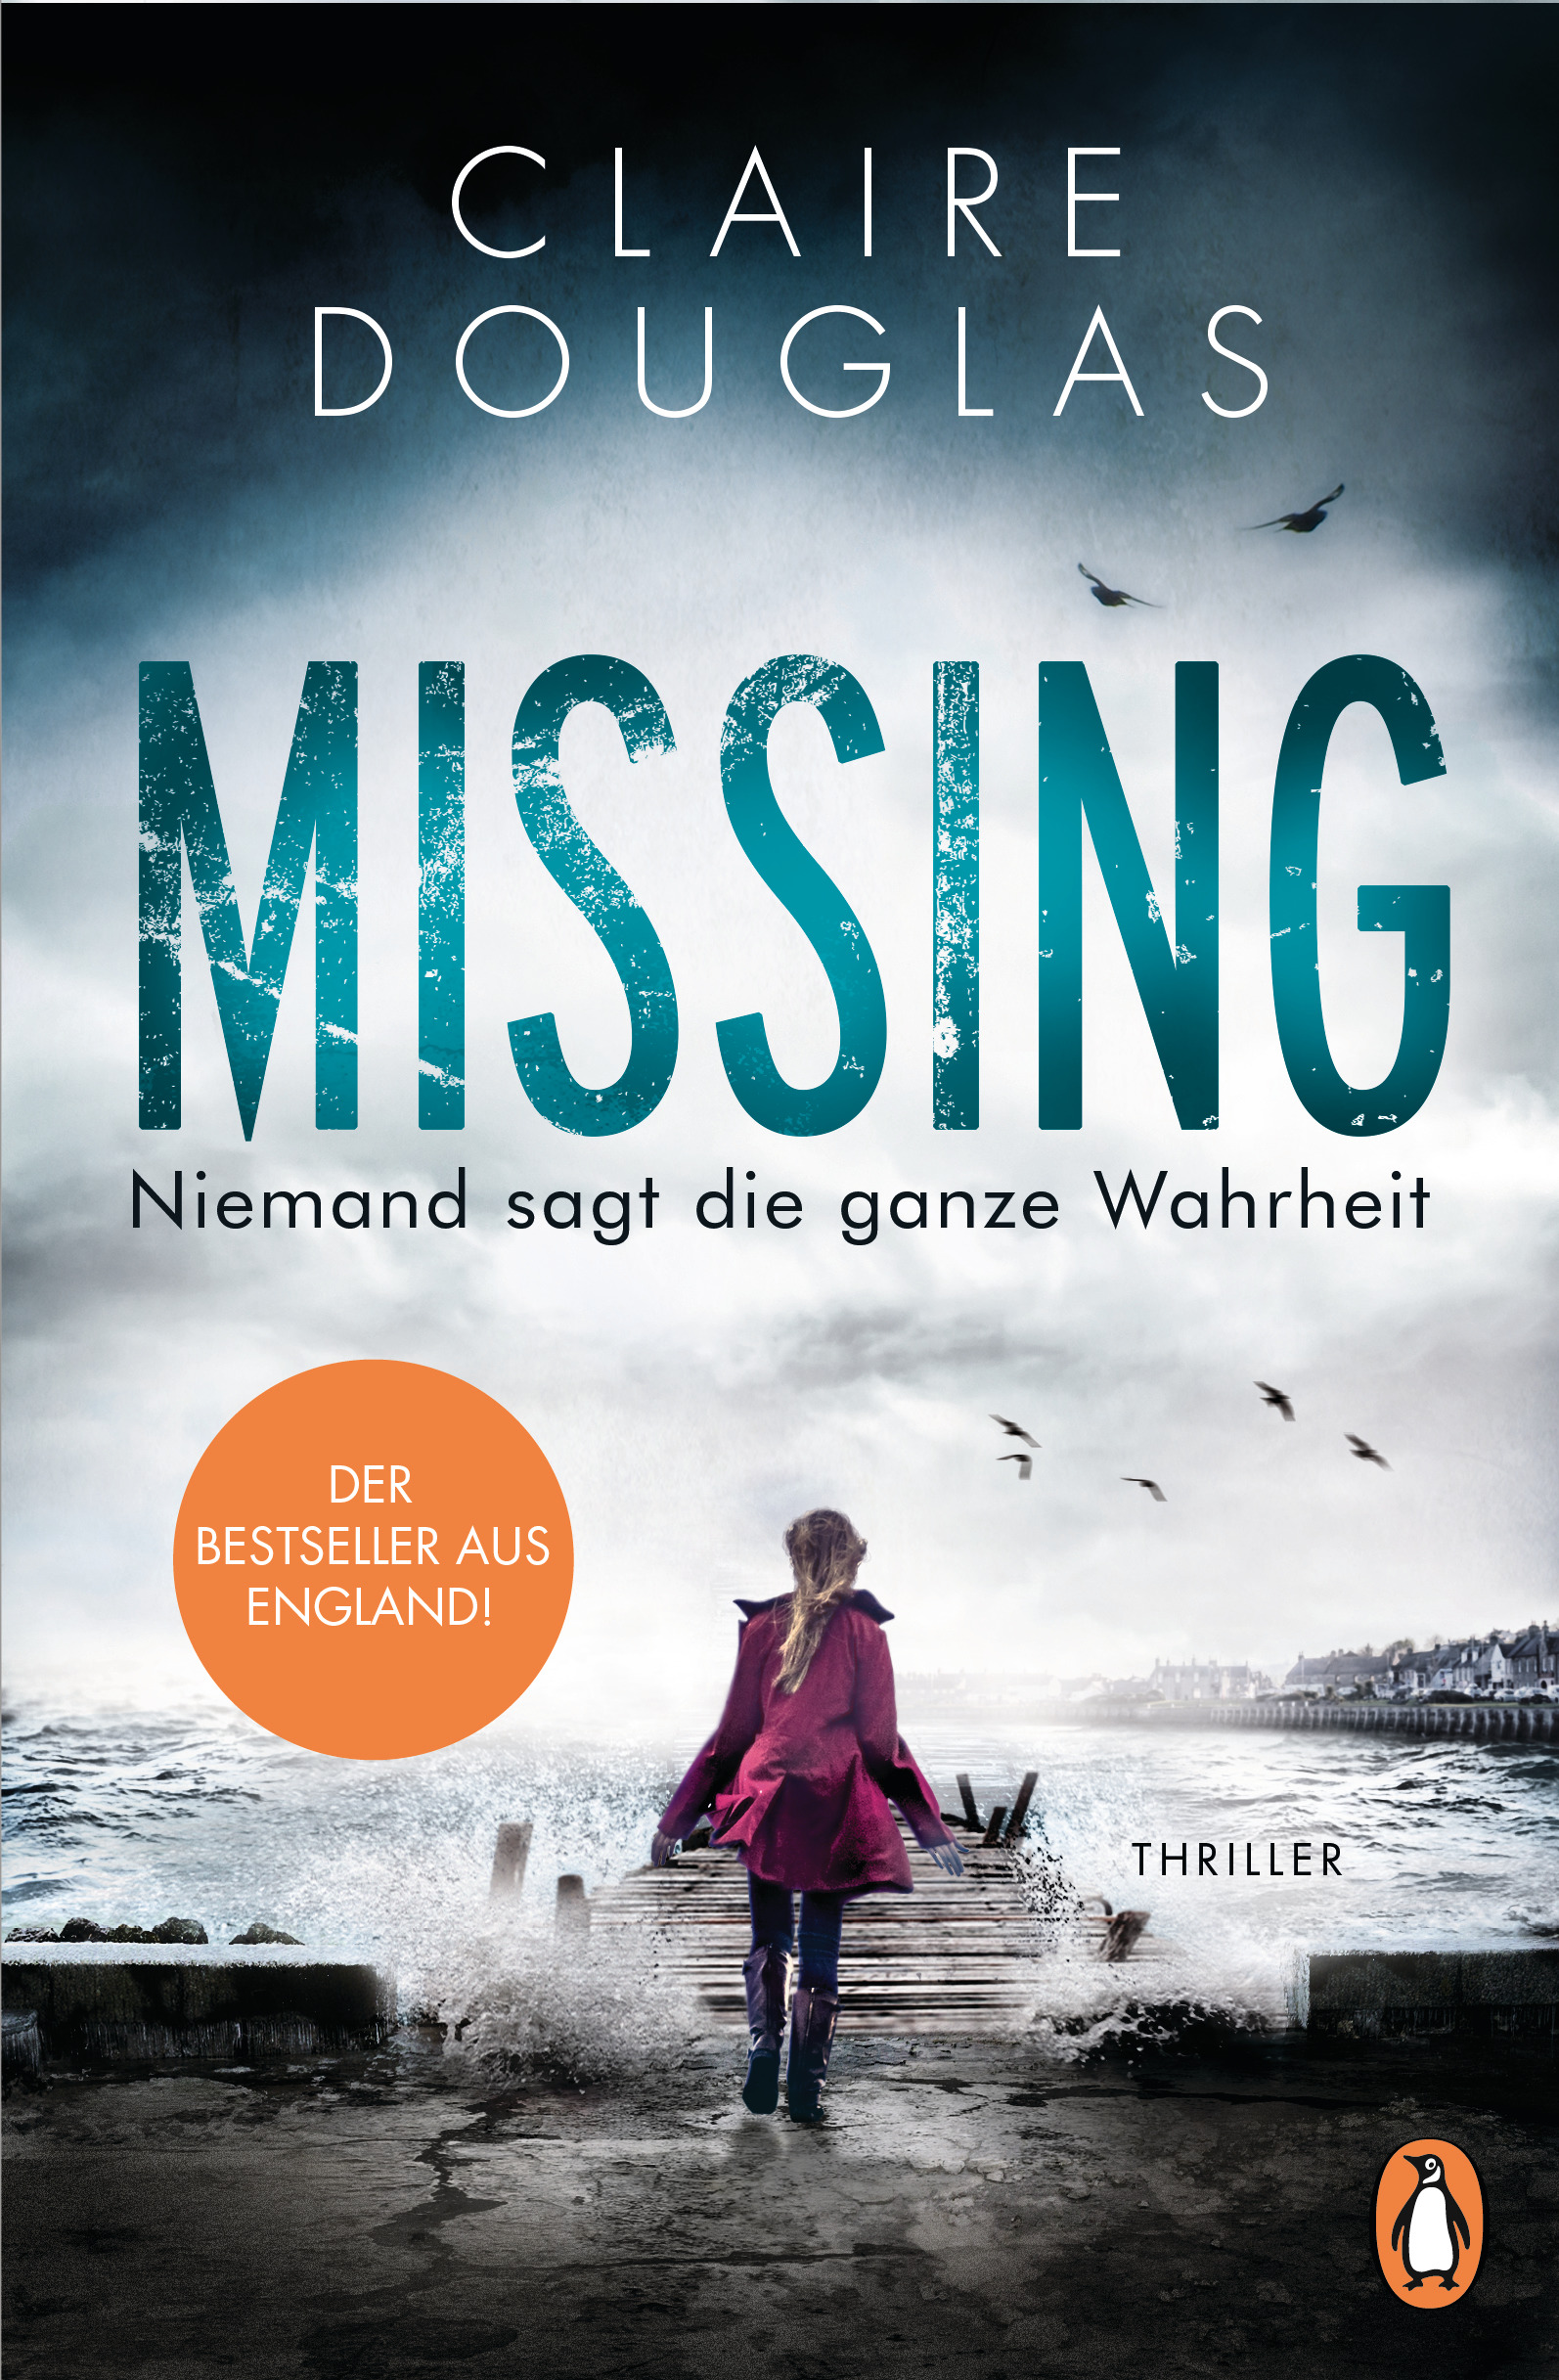 https://www.randomhouse.de/content/edition/covervoila_hires/Douglas_CMissing_183208.jpg